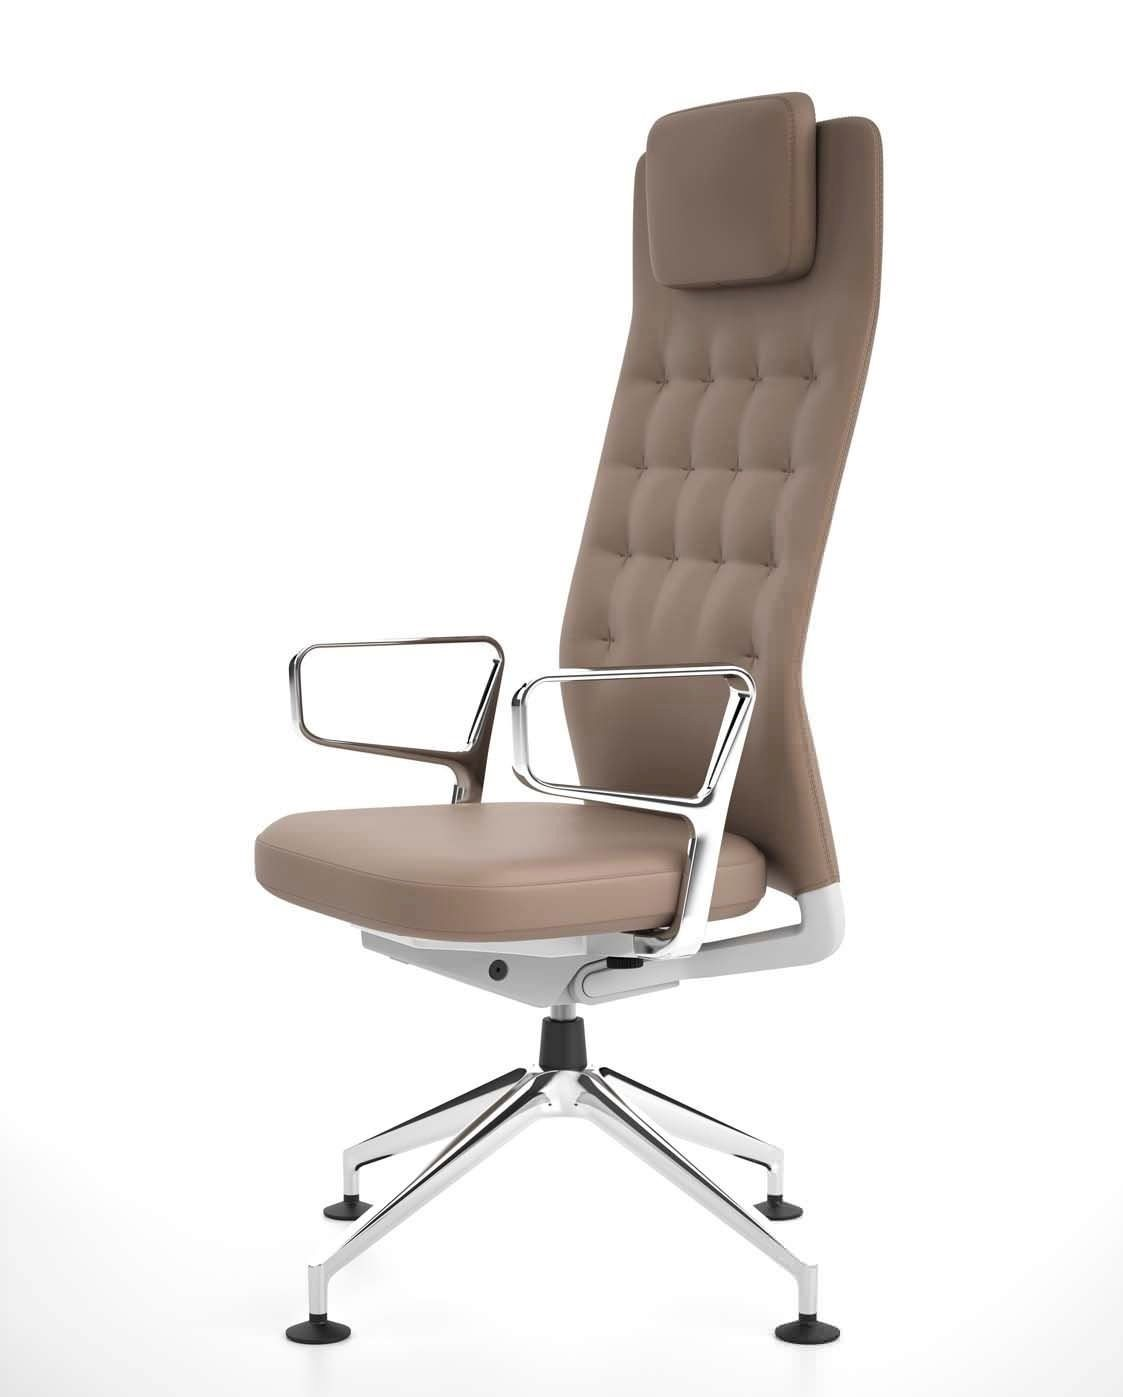 Vitra Office Chair 2010 2016 Id Chair Concept By Vitra Designed By Antonio